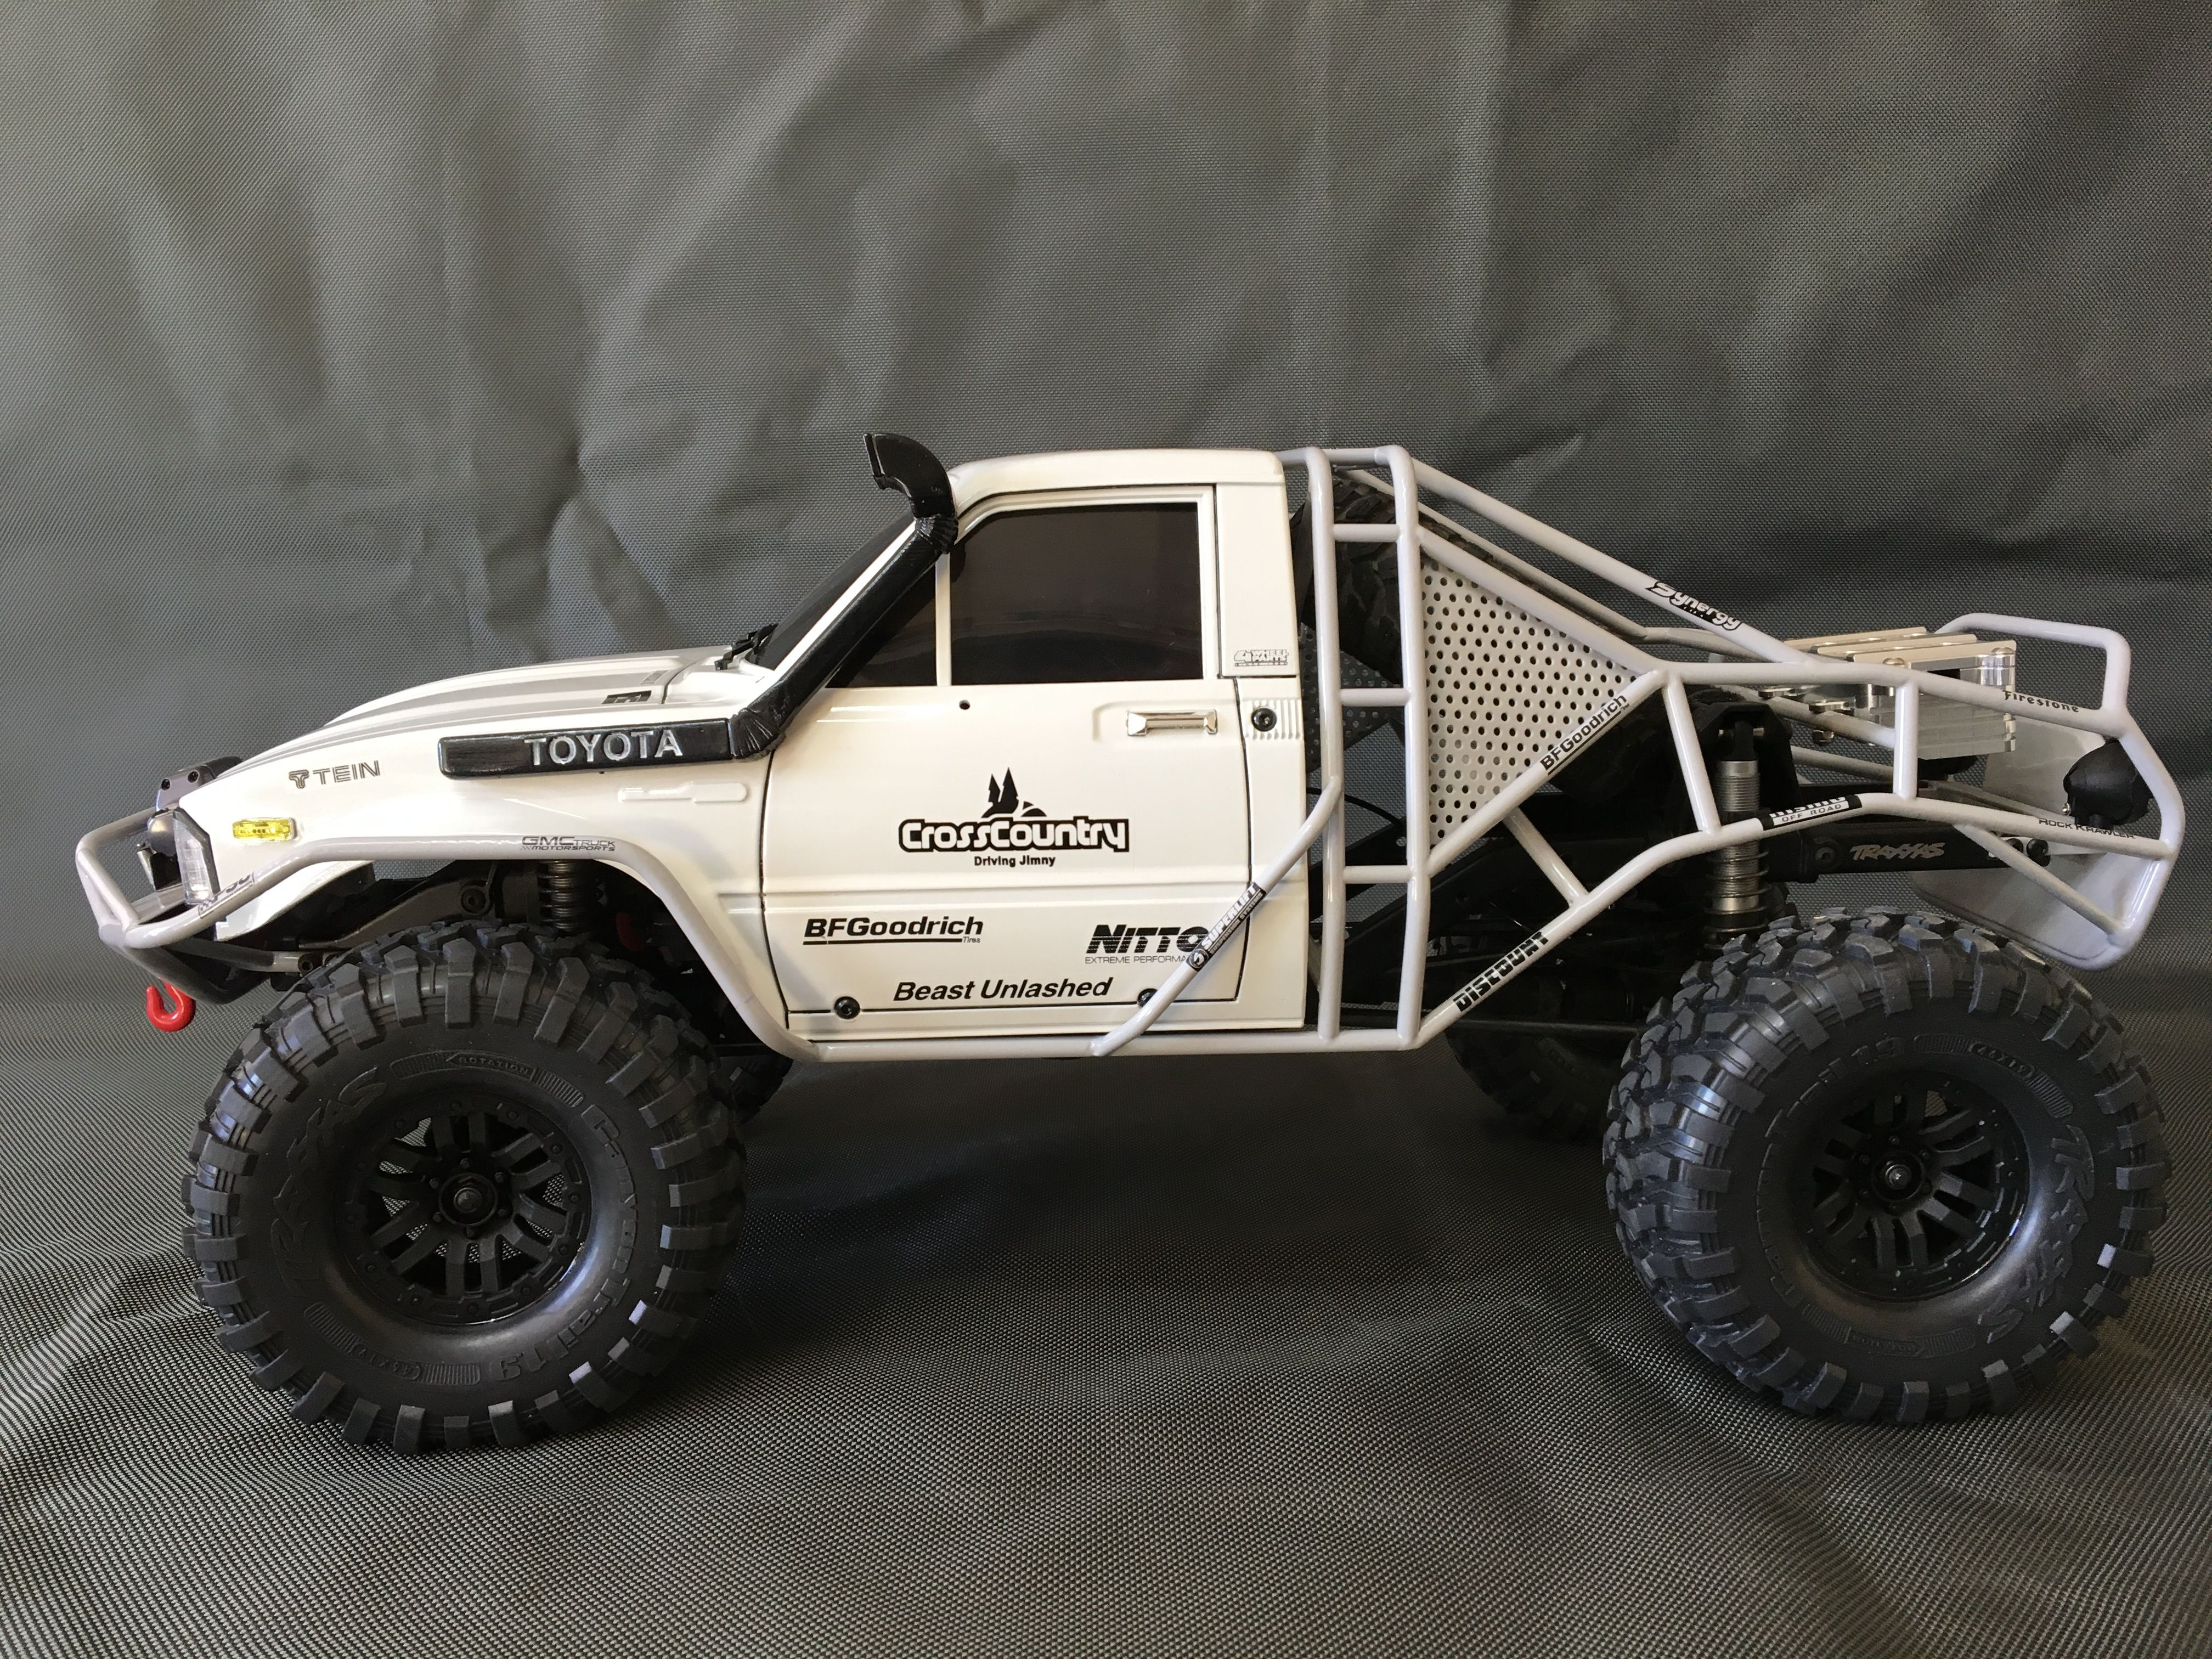 Pin By Justin Klus On Customotivescalerc Rc Cars Model Truck Kits Rc Cars Rc Cars And Trucks